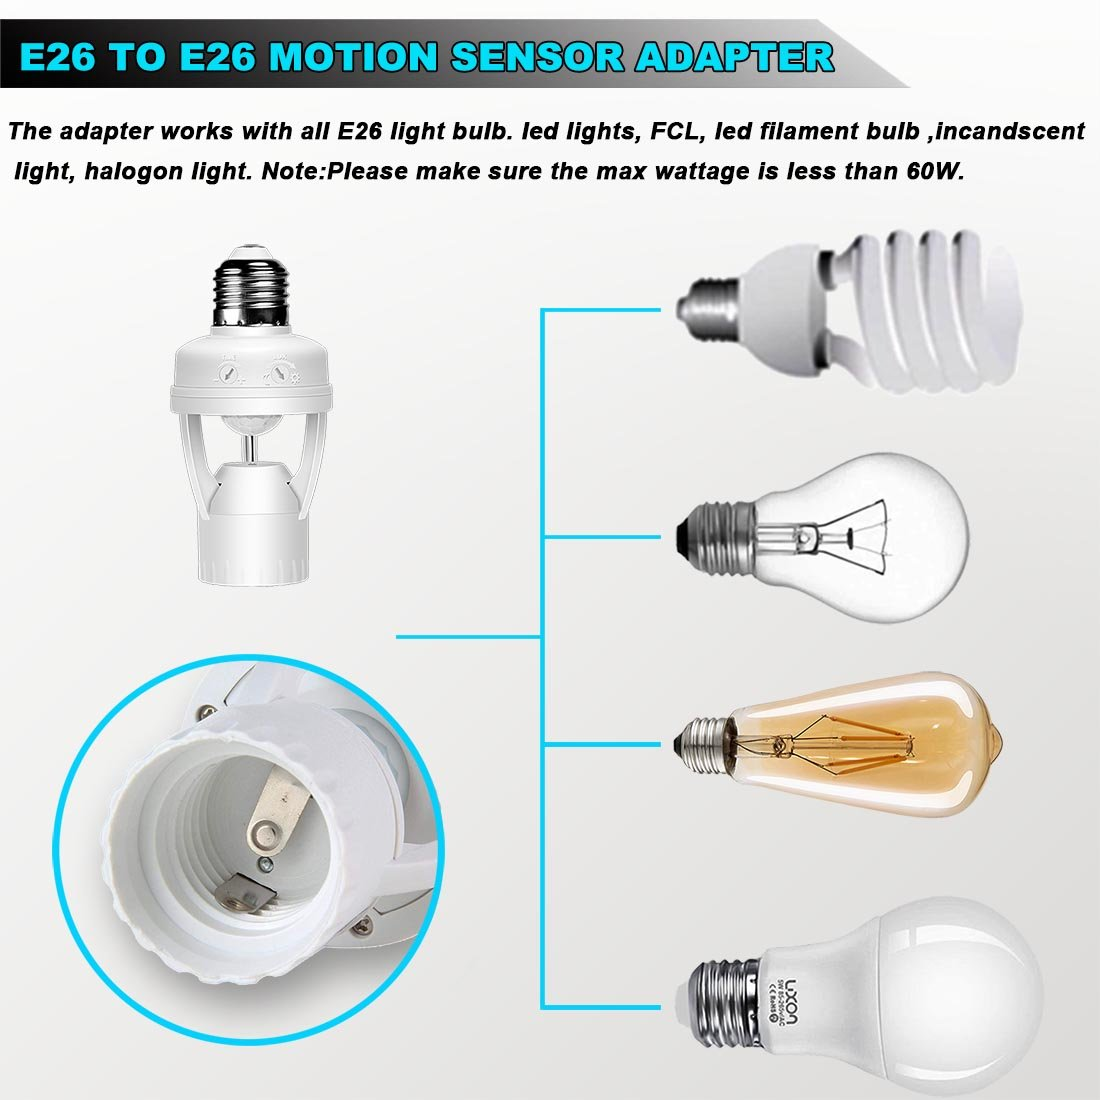 Motion Sensor Light Lamp Socket Adapter Infrared E26 Bulb To Ac Wall Outlet Plug On Off Switch 12 Dimmable Suitable For E27 Base Garage Porch Stairs By Luxon